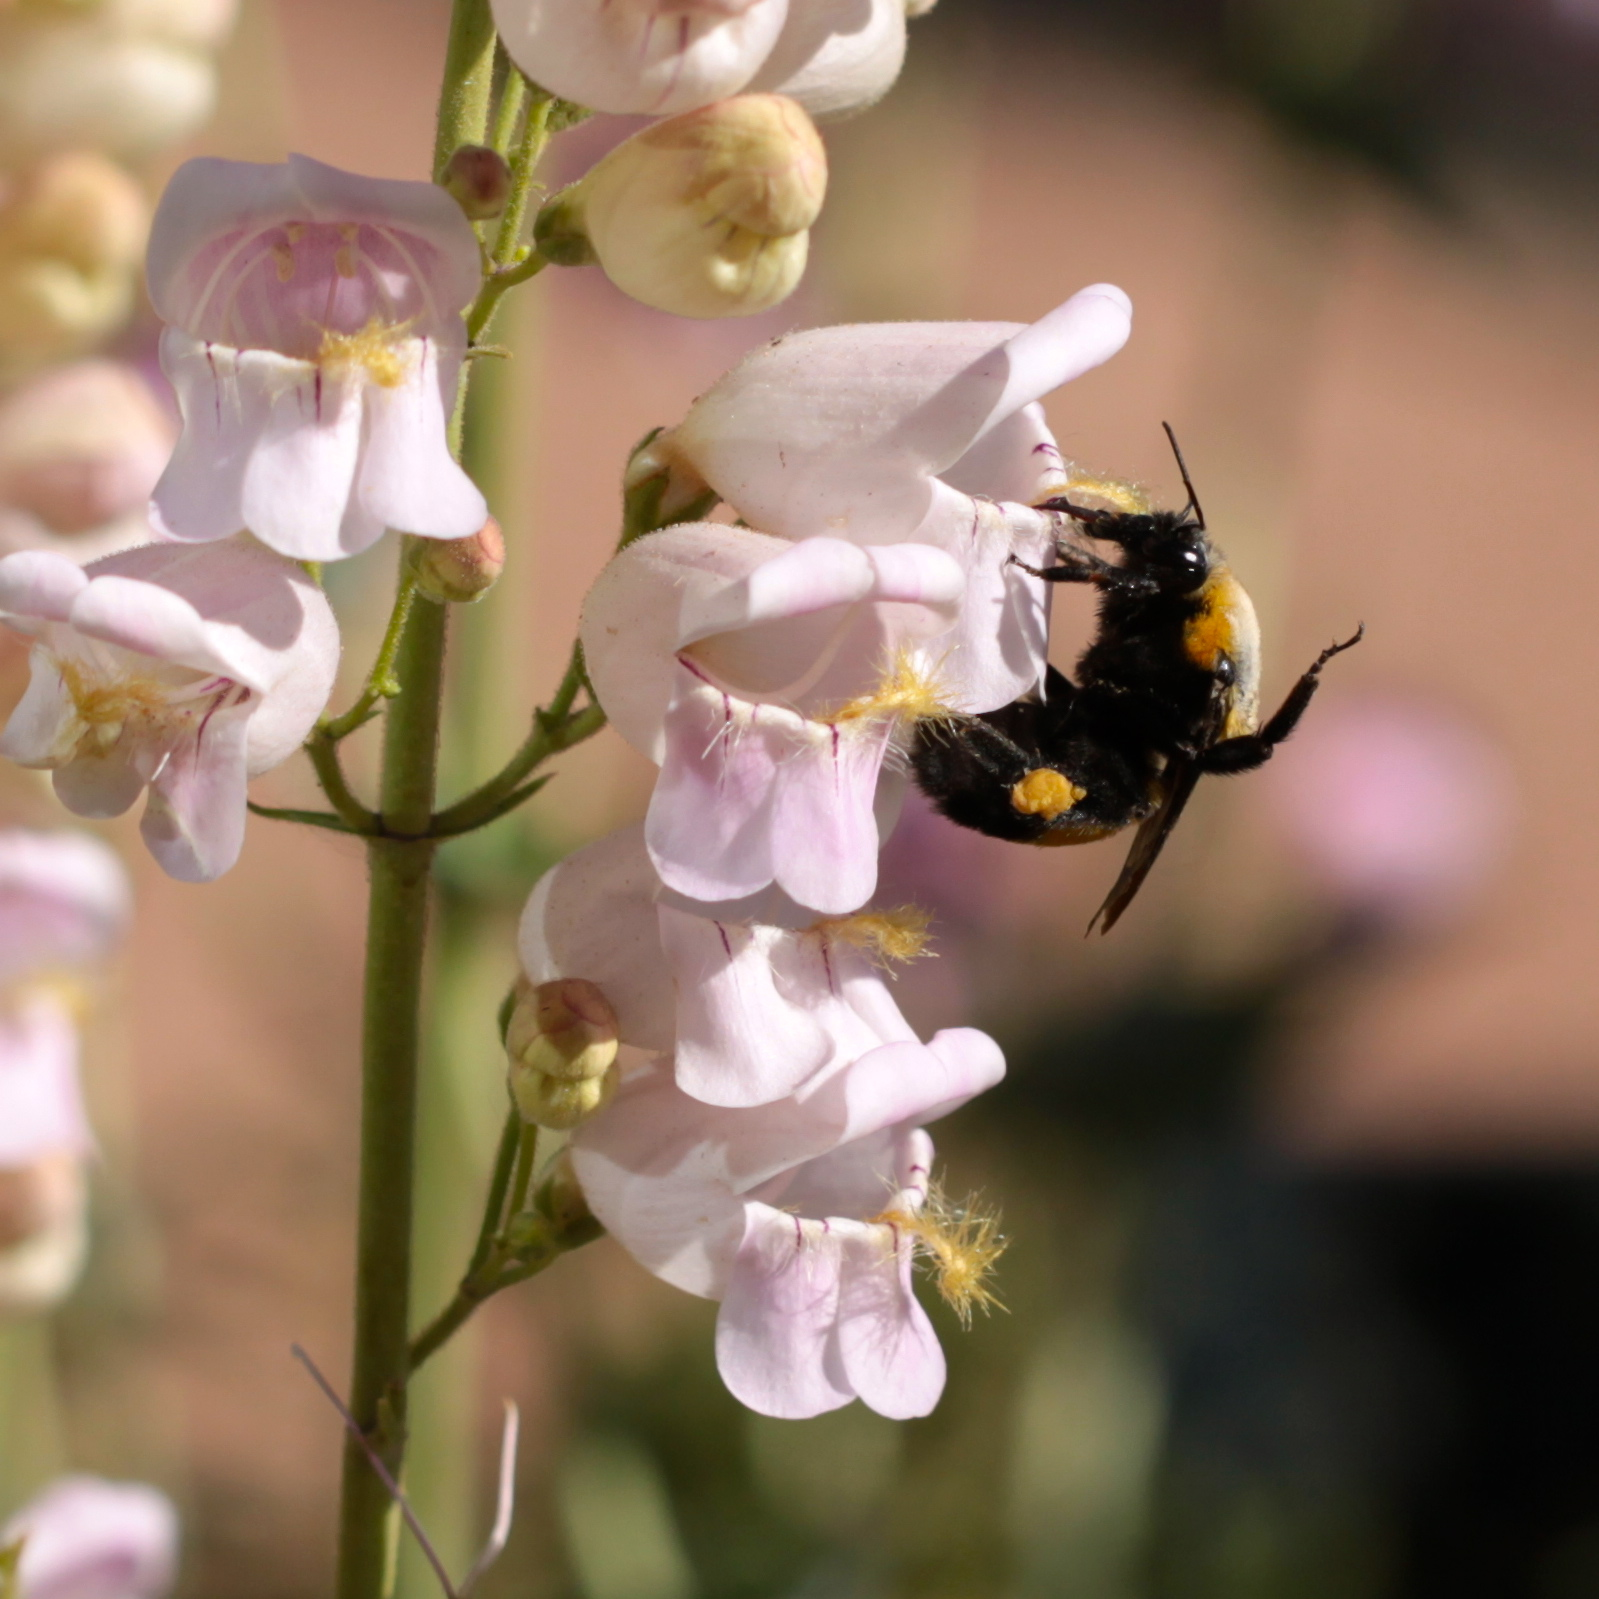 ...and a few days later on the Penstemon palmeri...